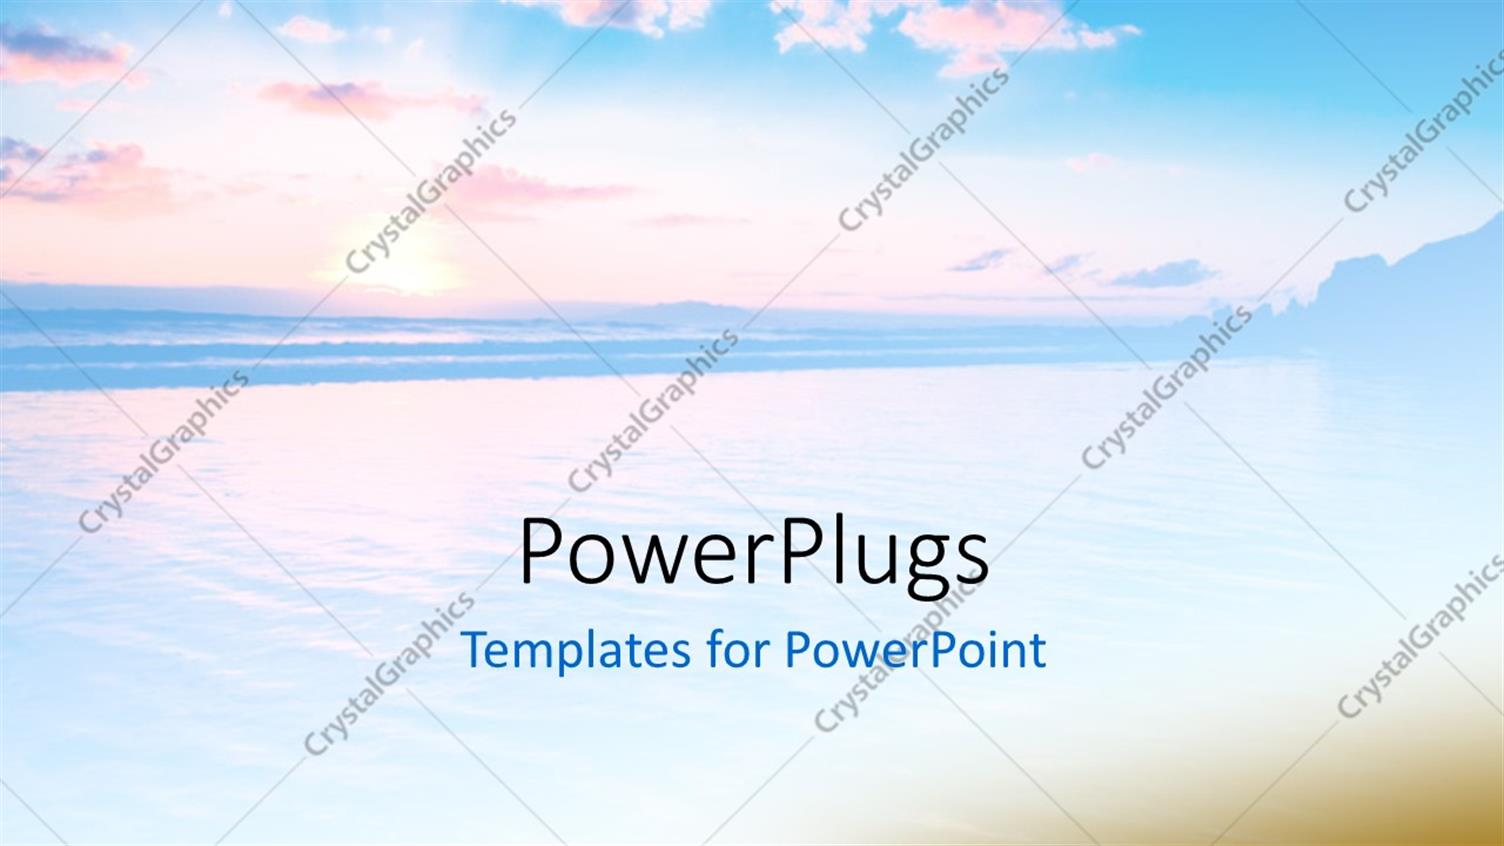 PowerPoint Template Displaying Beautiful Abstract Sunset Scene with Cool Blue Effect